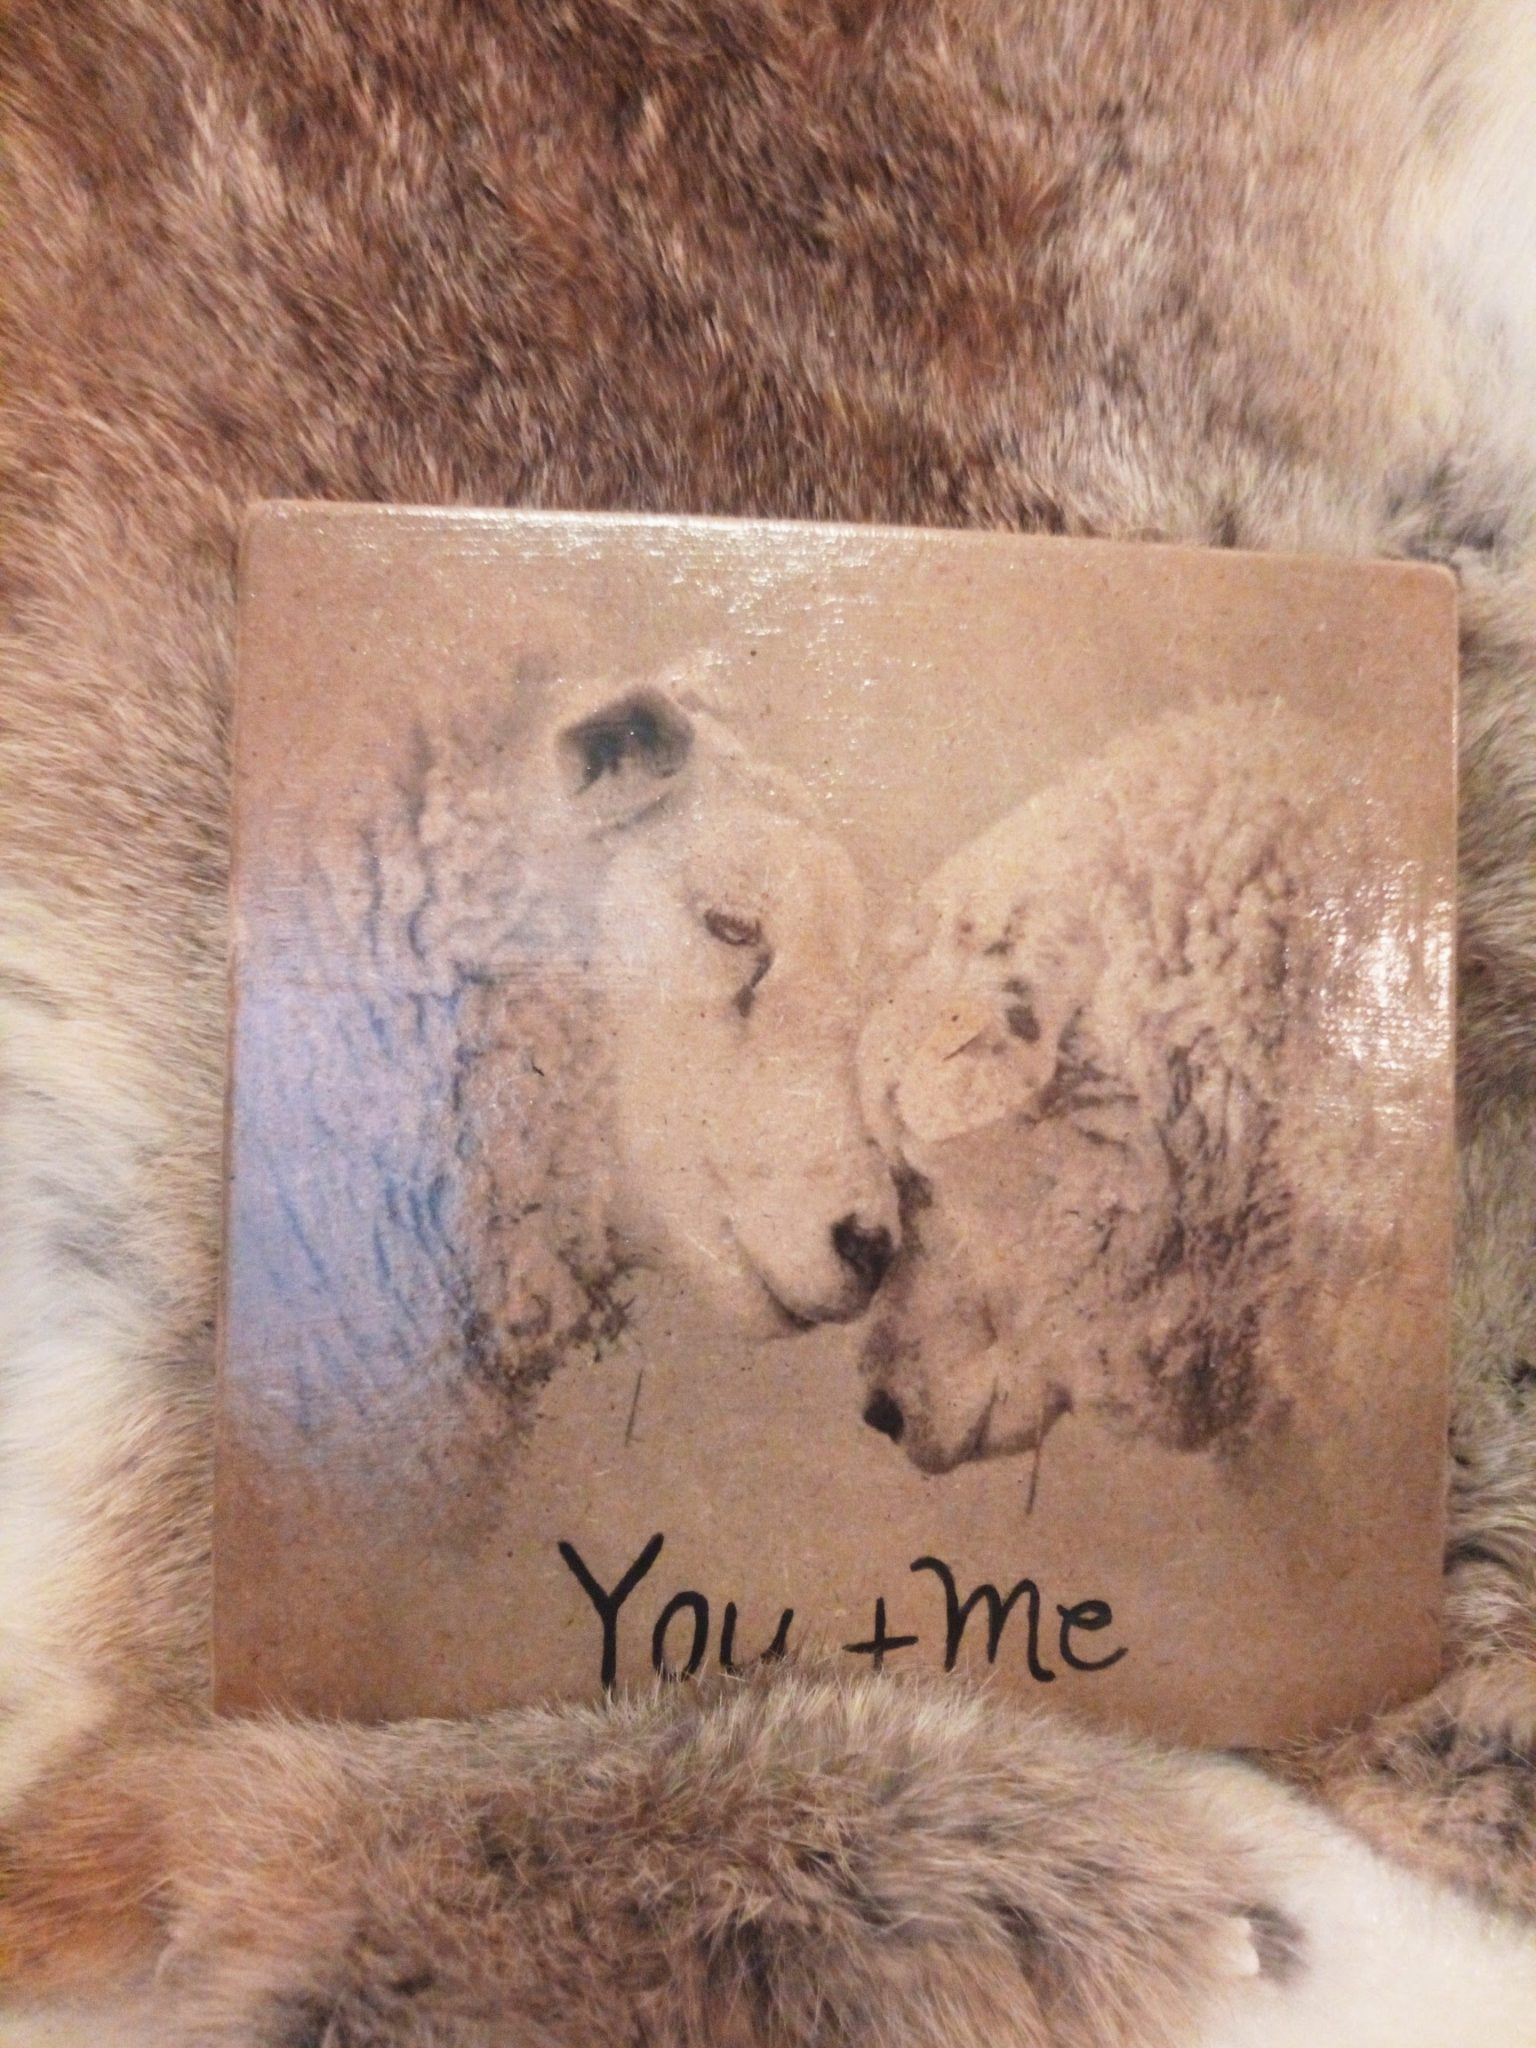 Deco-bordje: Schaap - You+me